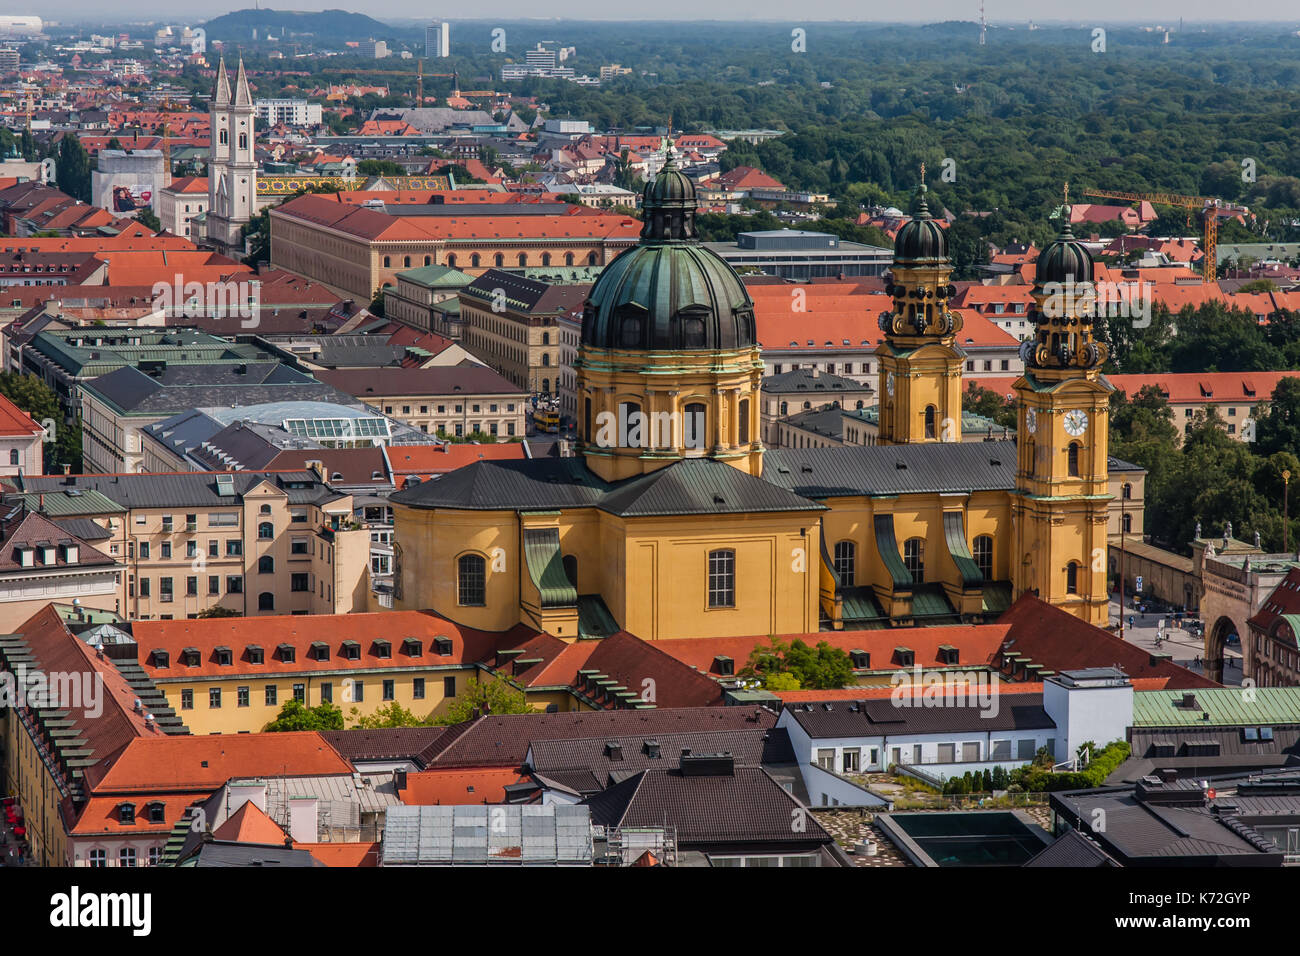 Cityscape of Munich with Theatine Church, a view from Frauenkirche - Stock Image